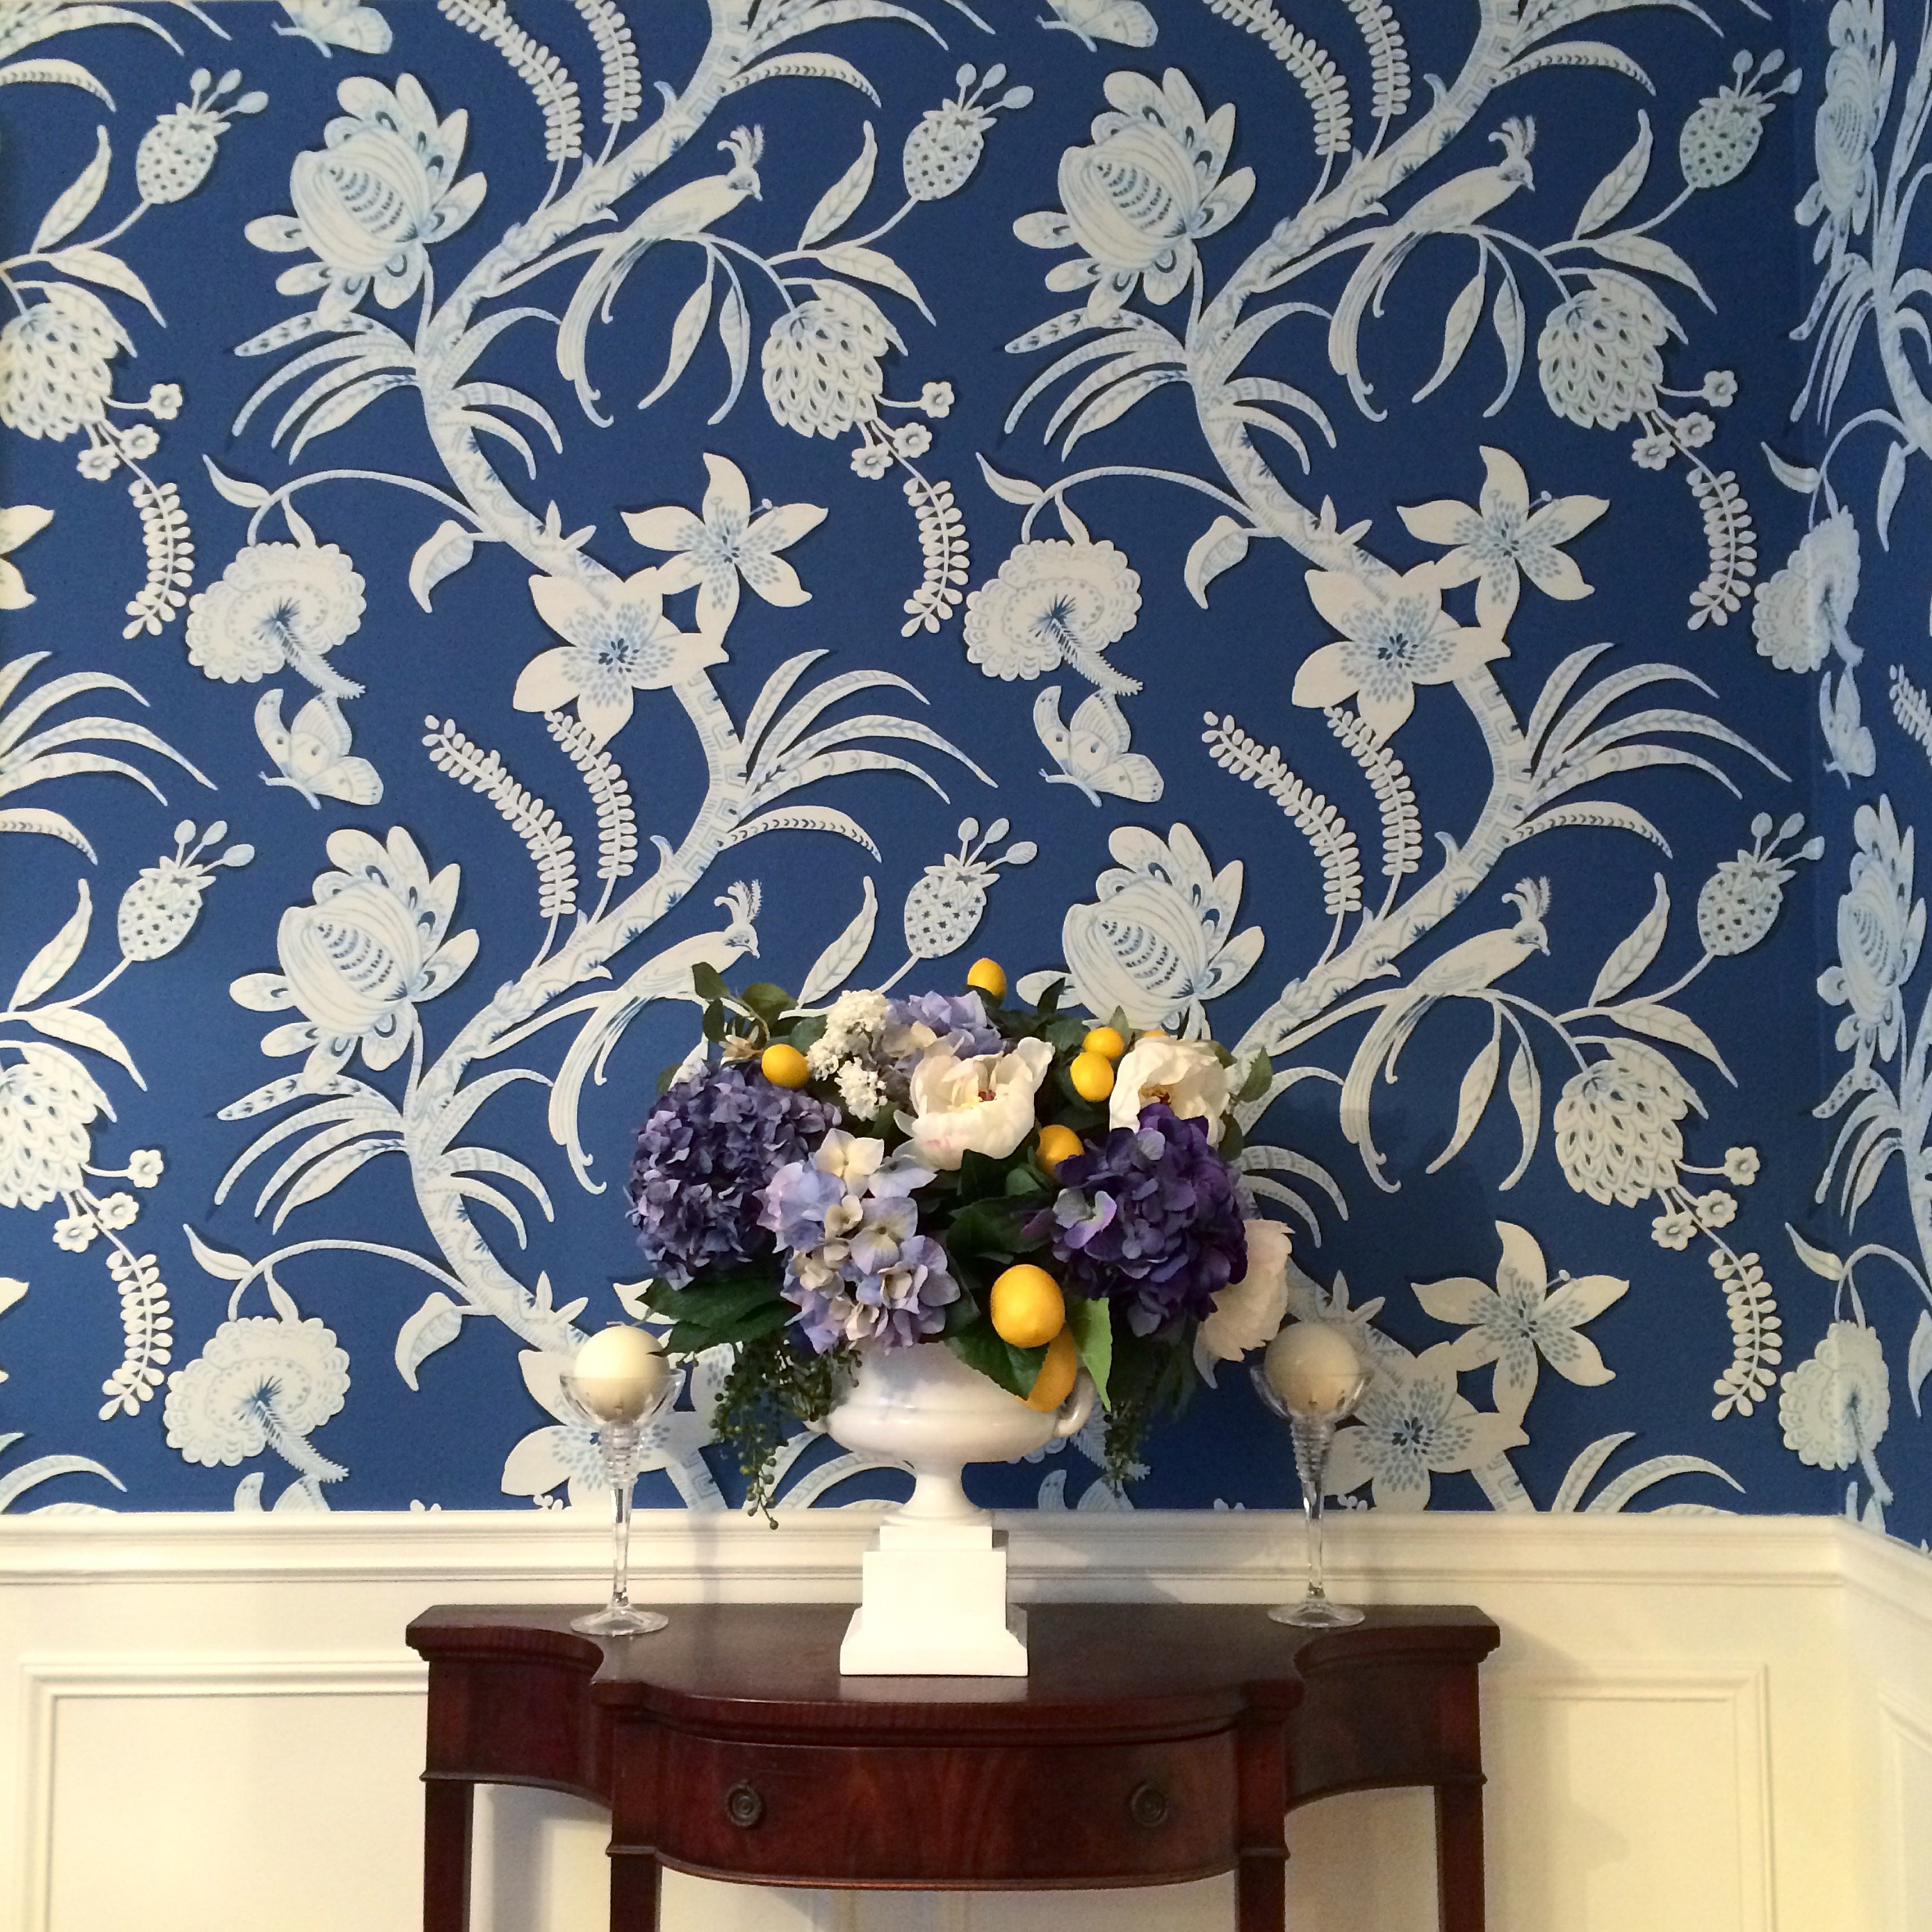 Thibaut-wallpaper-wall-covering-floral-traditonal-home-pattern-dining-room